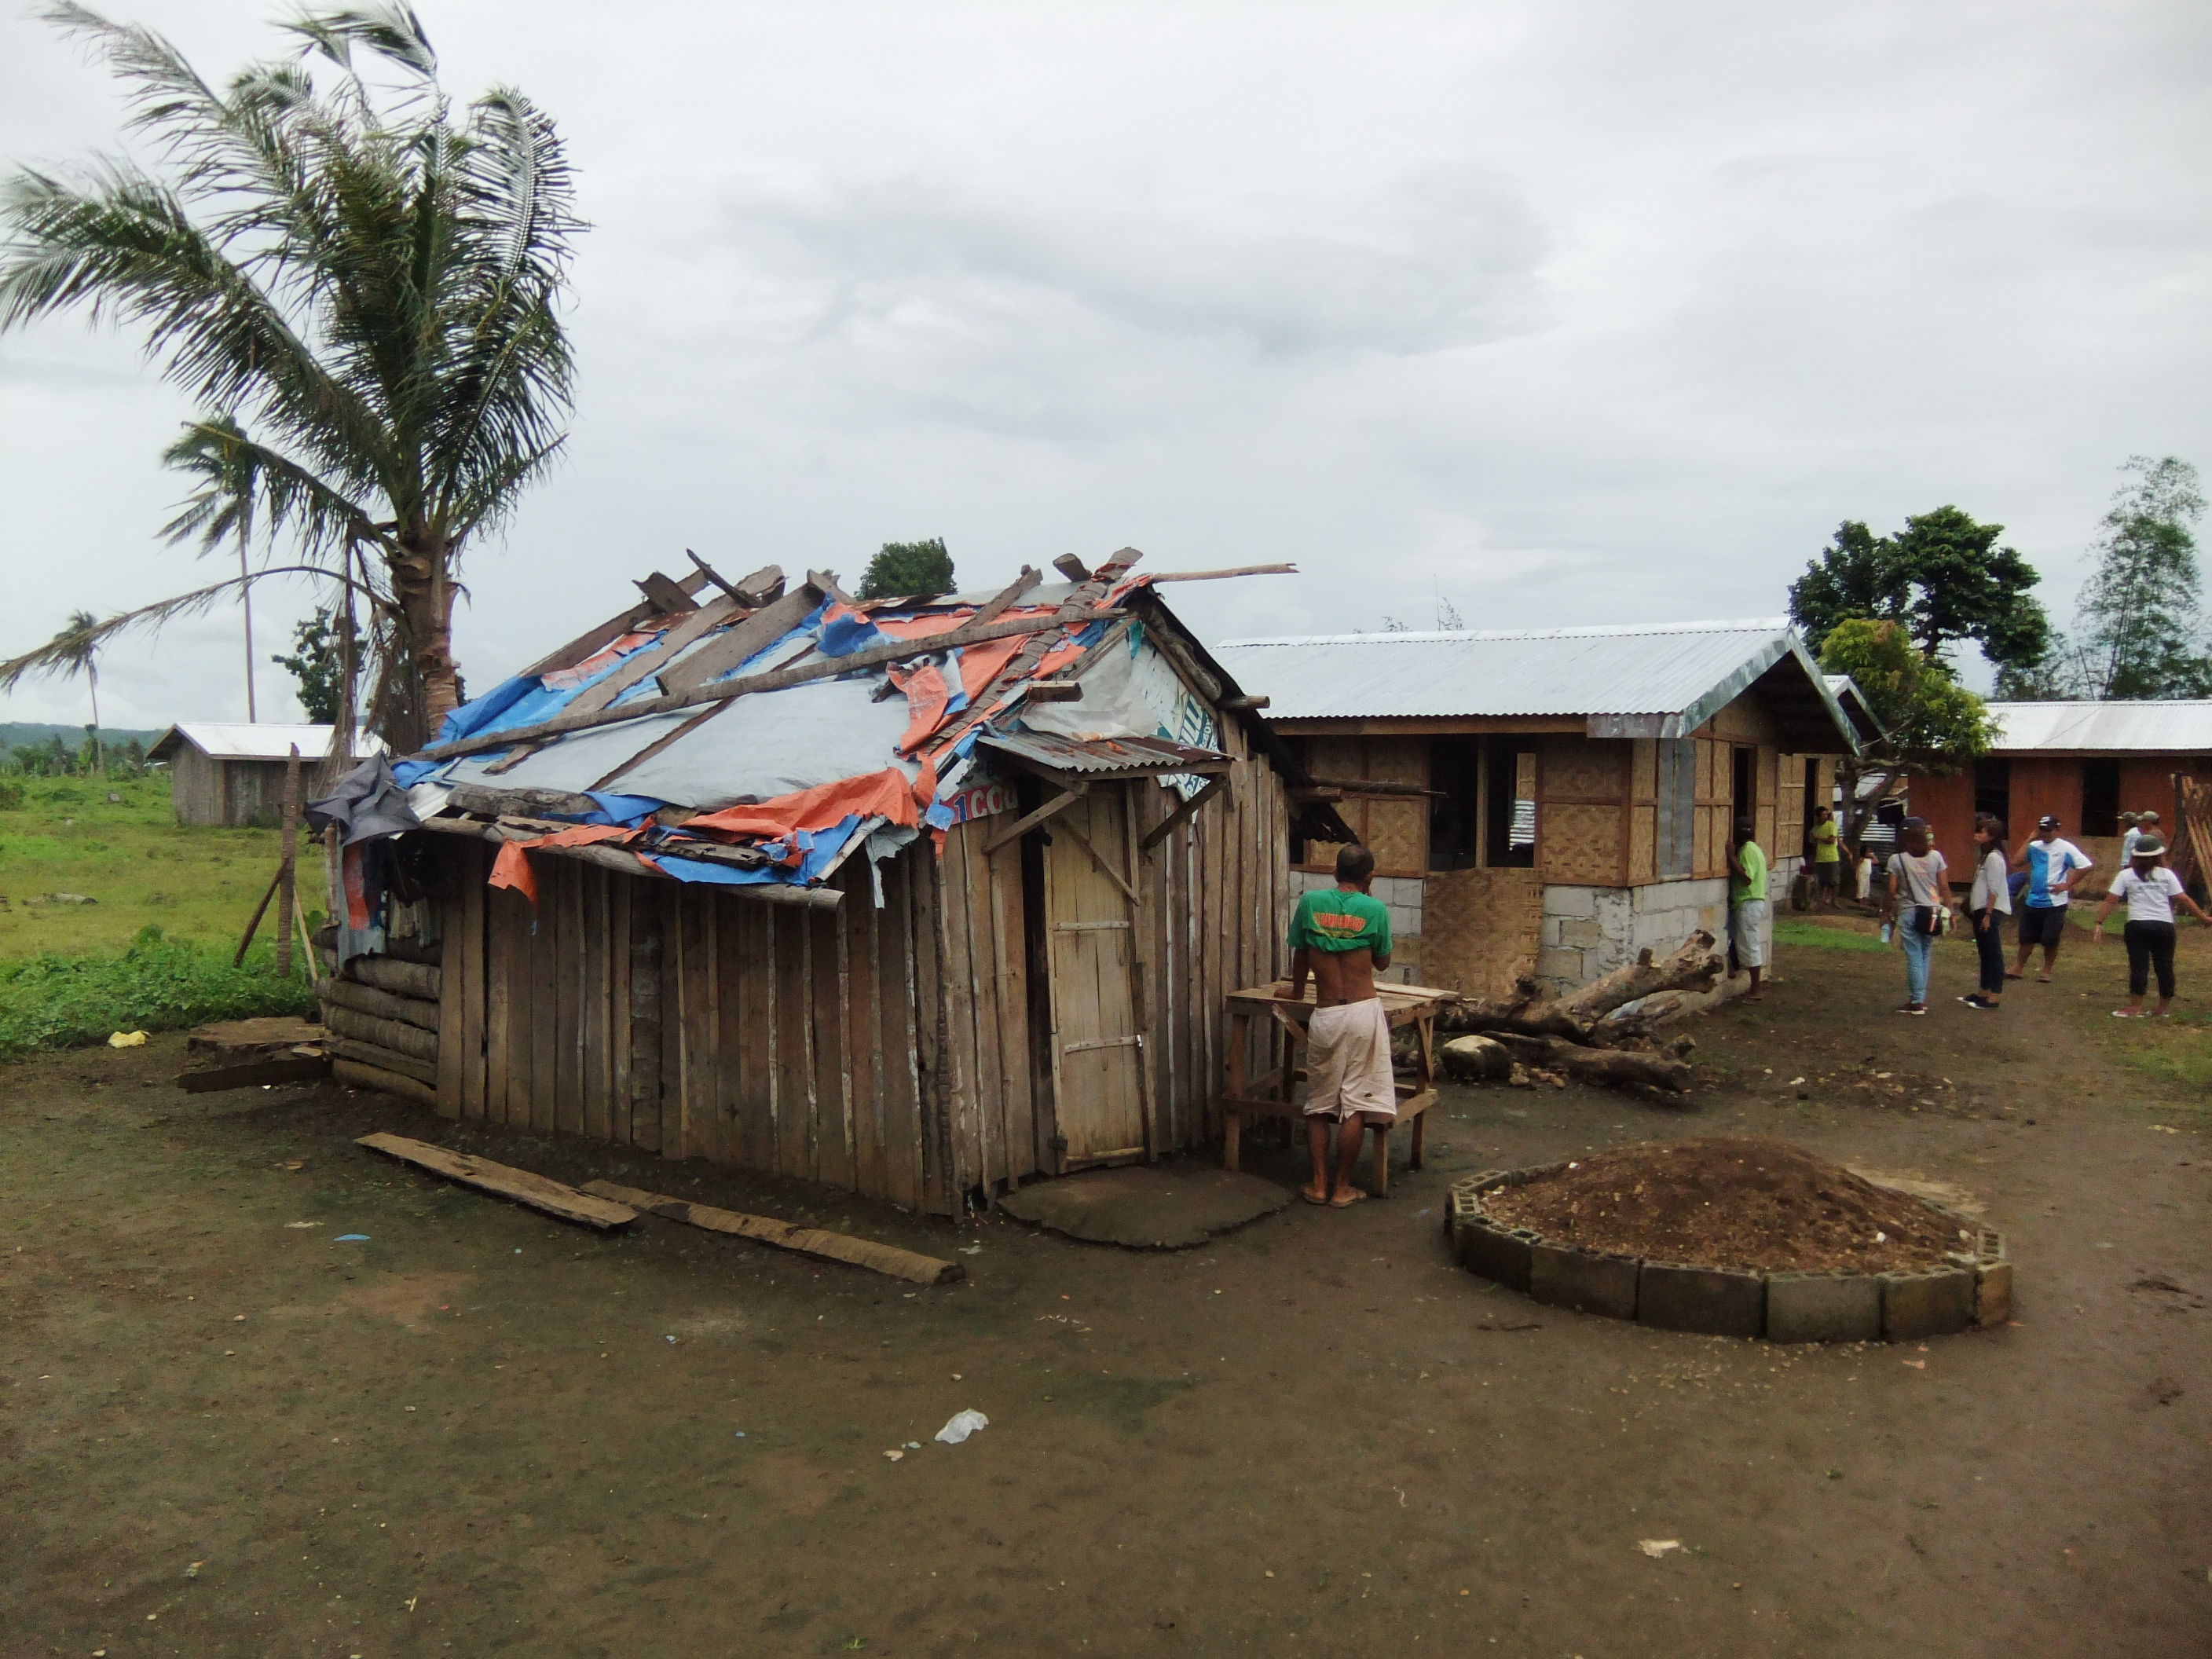 New self-built house nears completion alongside makeshift shelter, in Leyte, Philippines